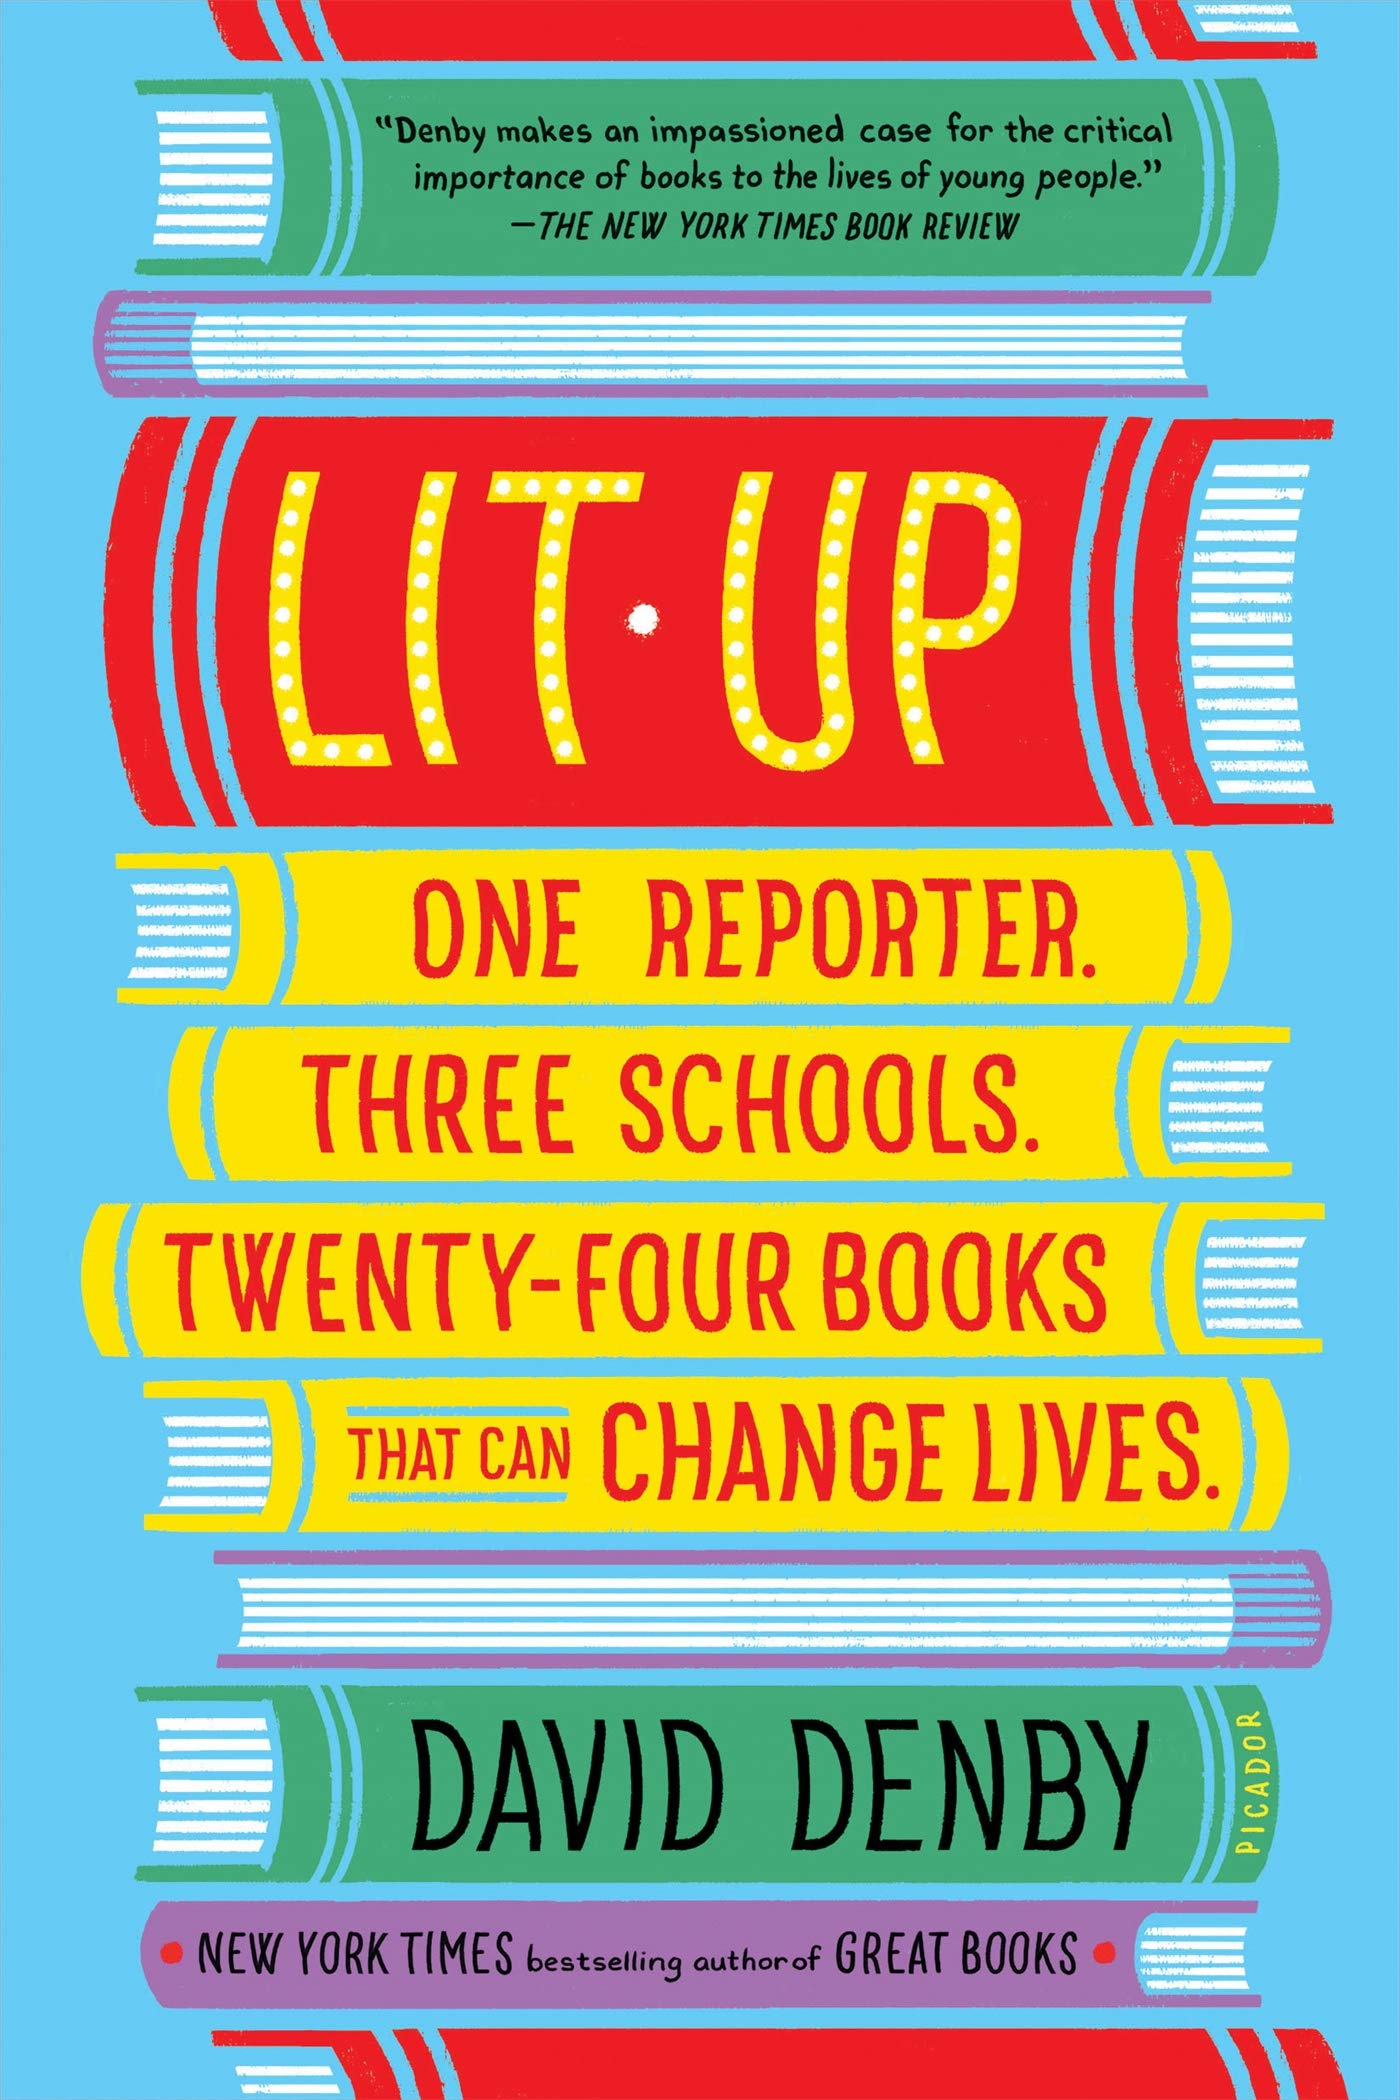 One Reporter. Three Schools. Twenty-four Books That Can Change Lives.